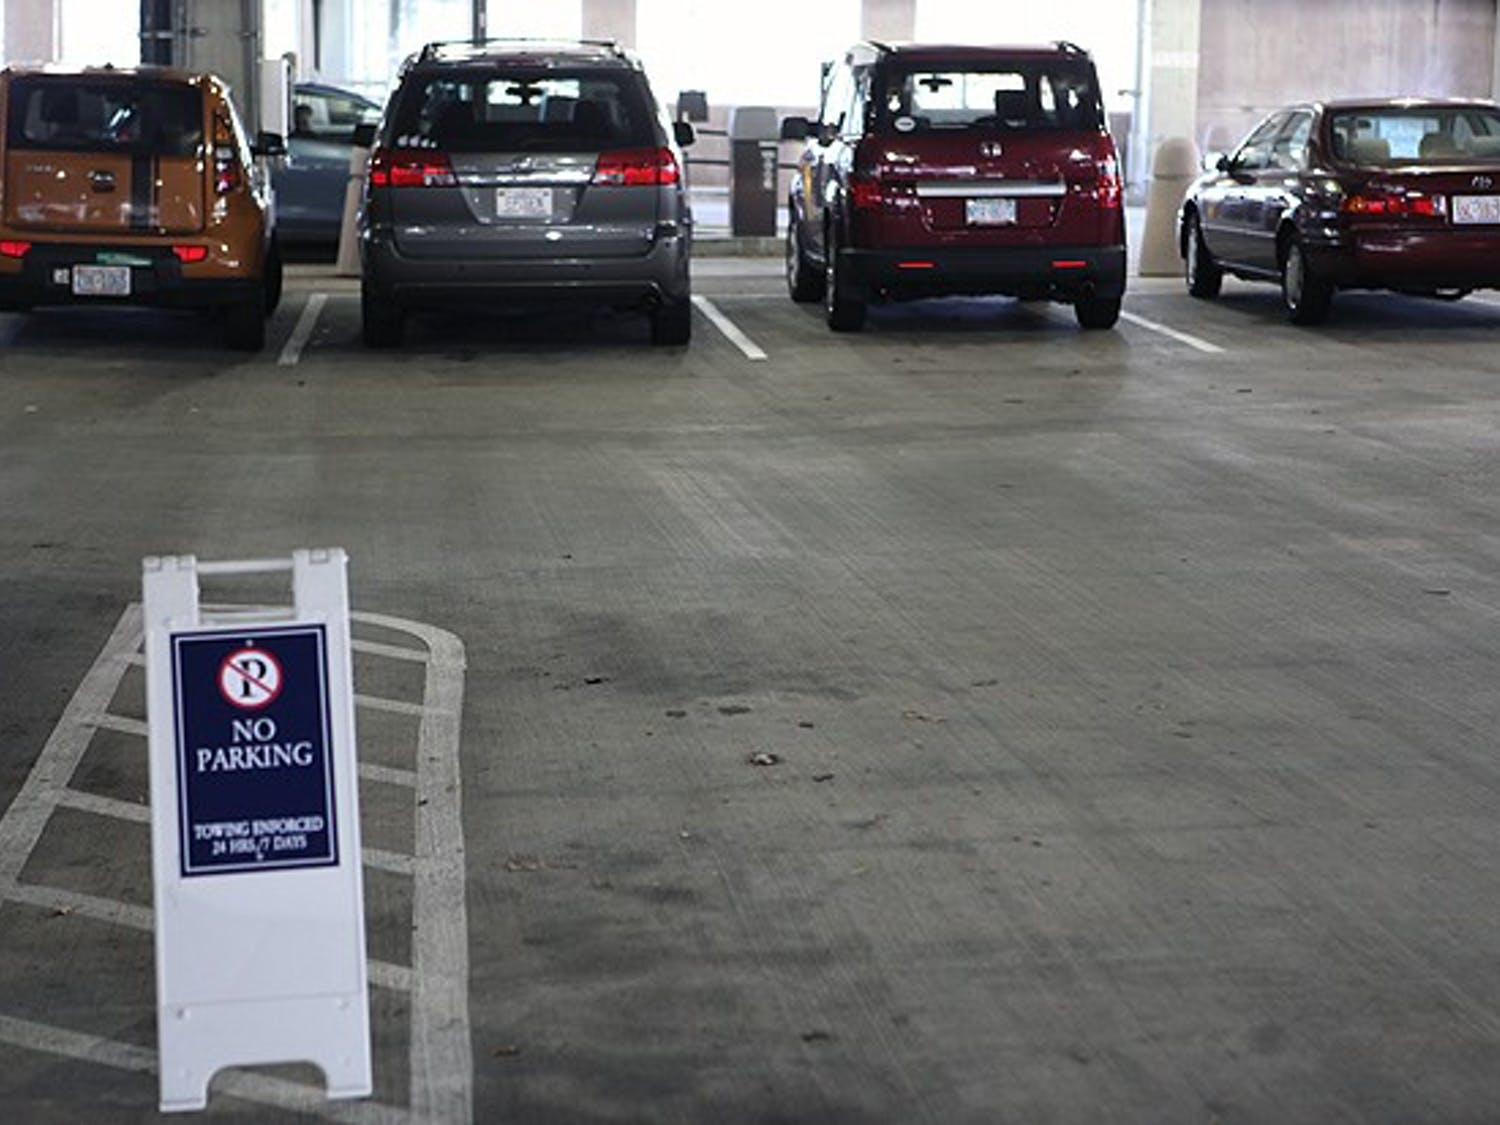 Students are not allowed to park in the Bryan Center garage in an effort to open up spaces for campus visitors.